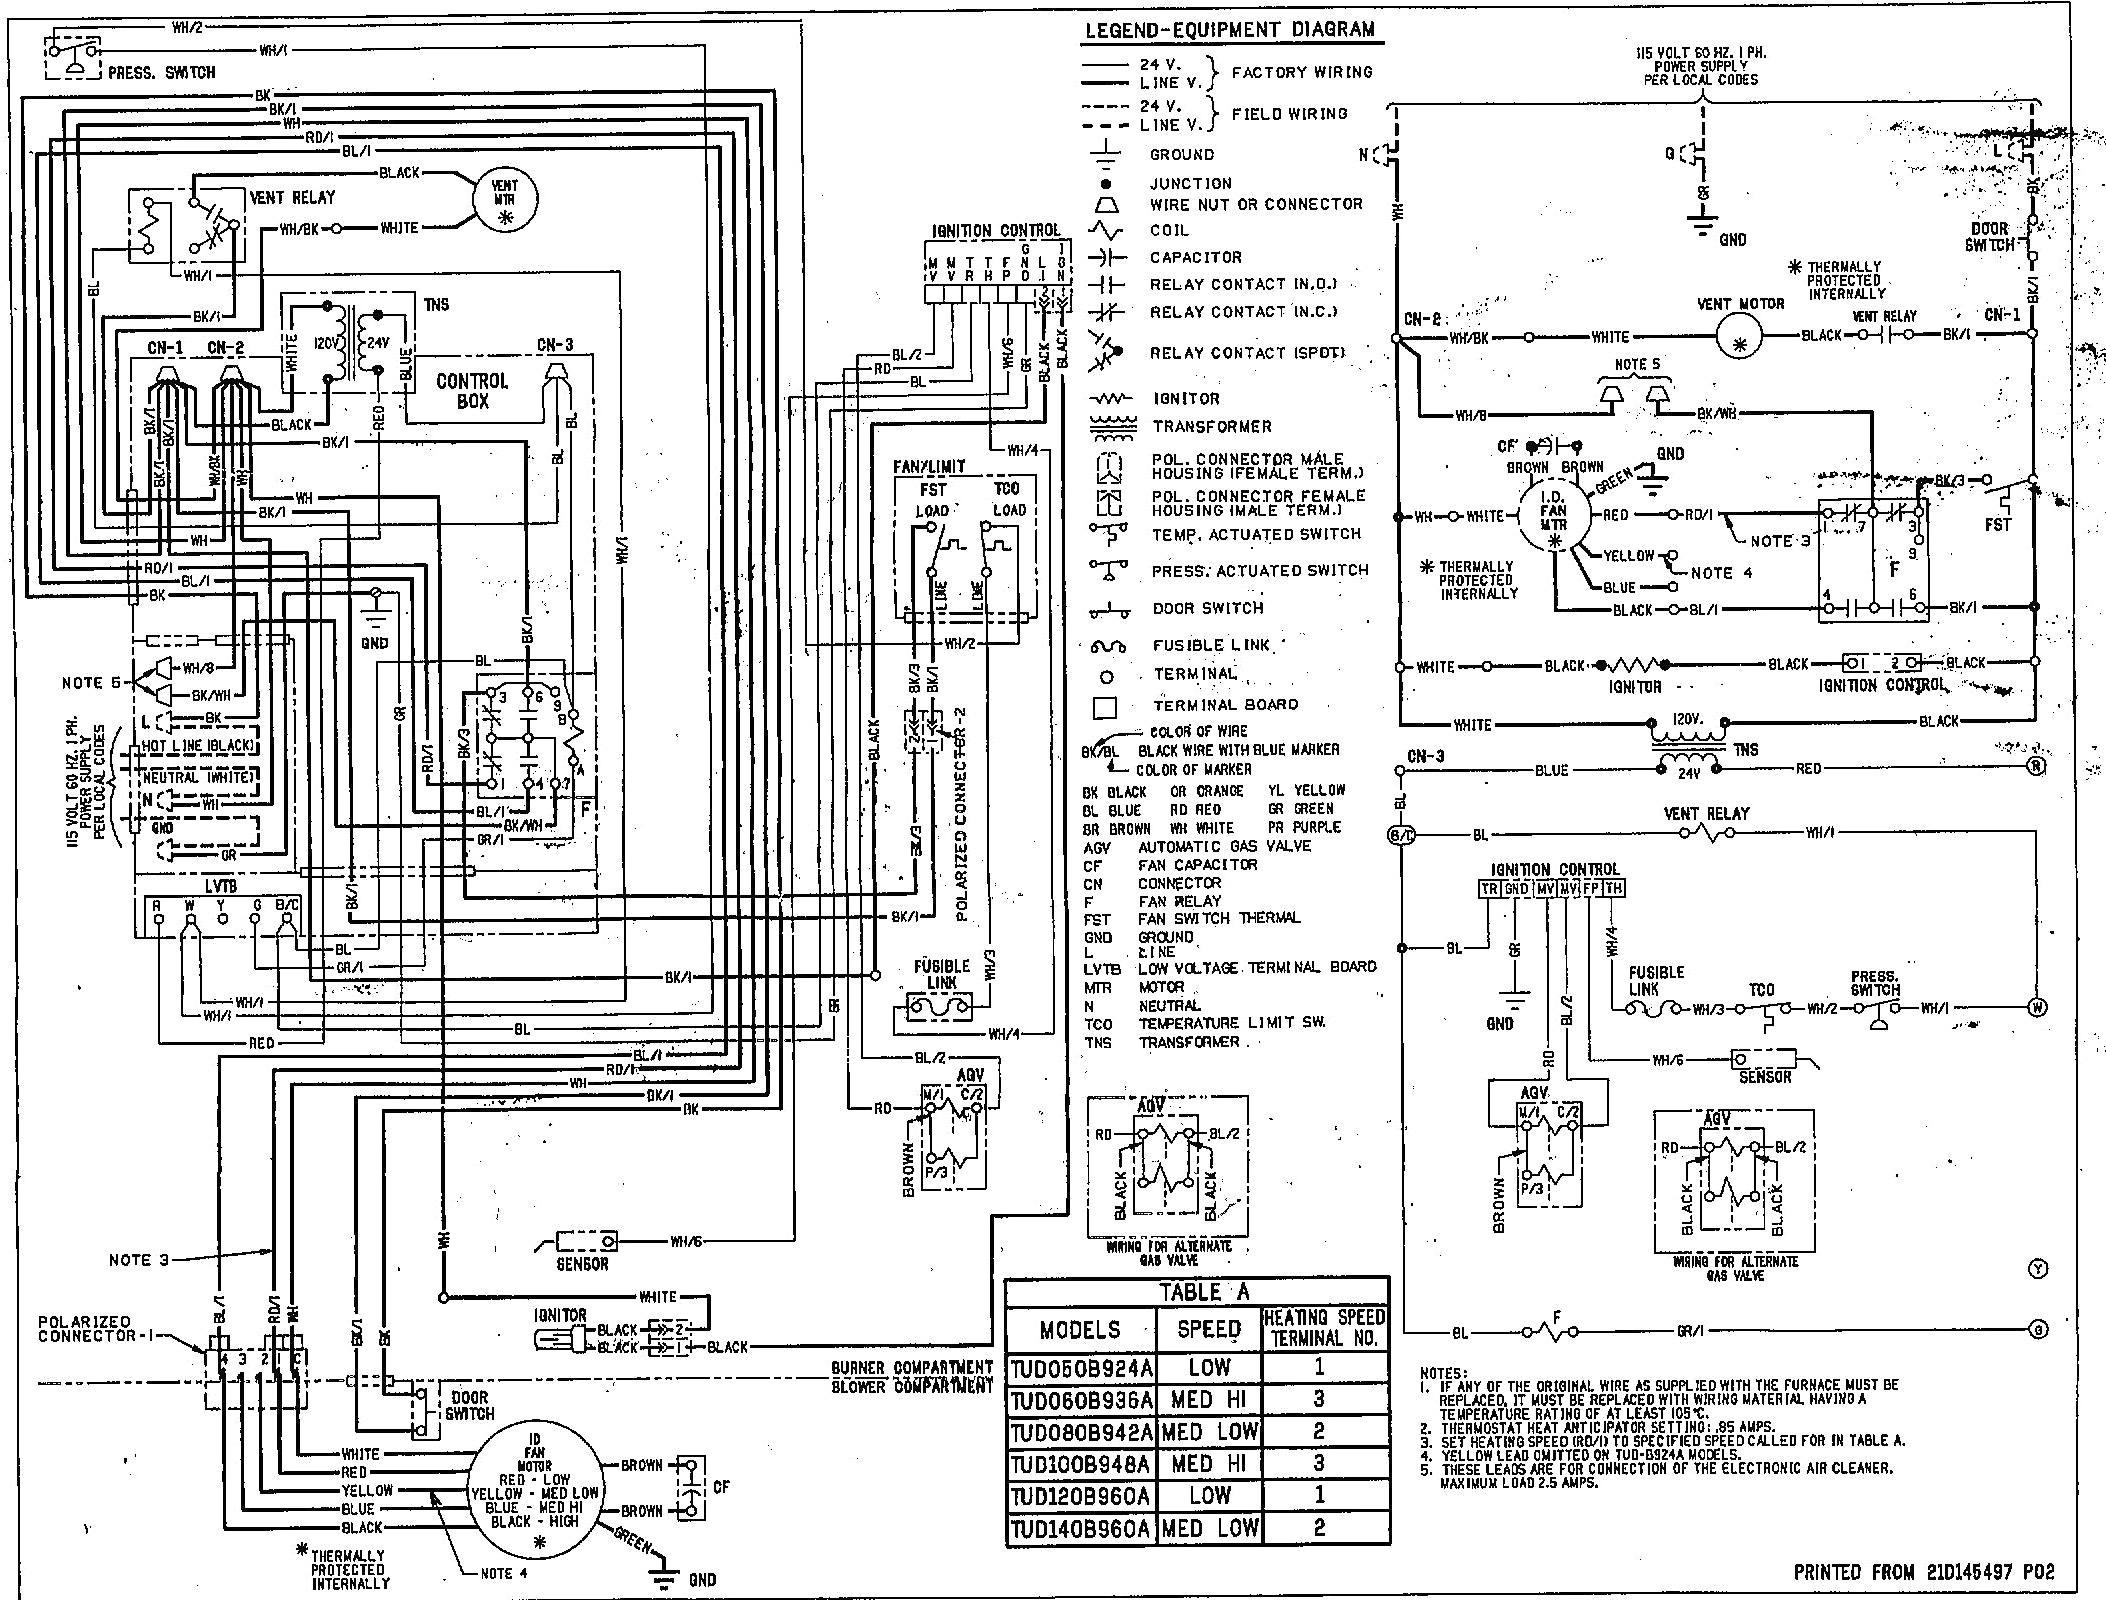 Comfortmaker Thermostat Wiring - Wiring Diagram All on gibson heat pump condenser wiring, gibson heat pump air conditioner, gibson 3 ton heat pump, gibson heat pump wiring diagram, gibson heat pump blower motor,